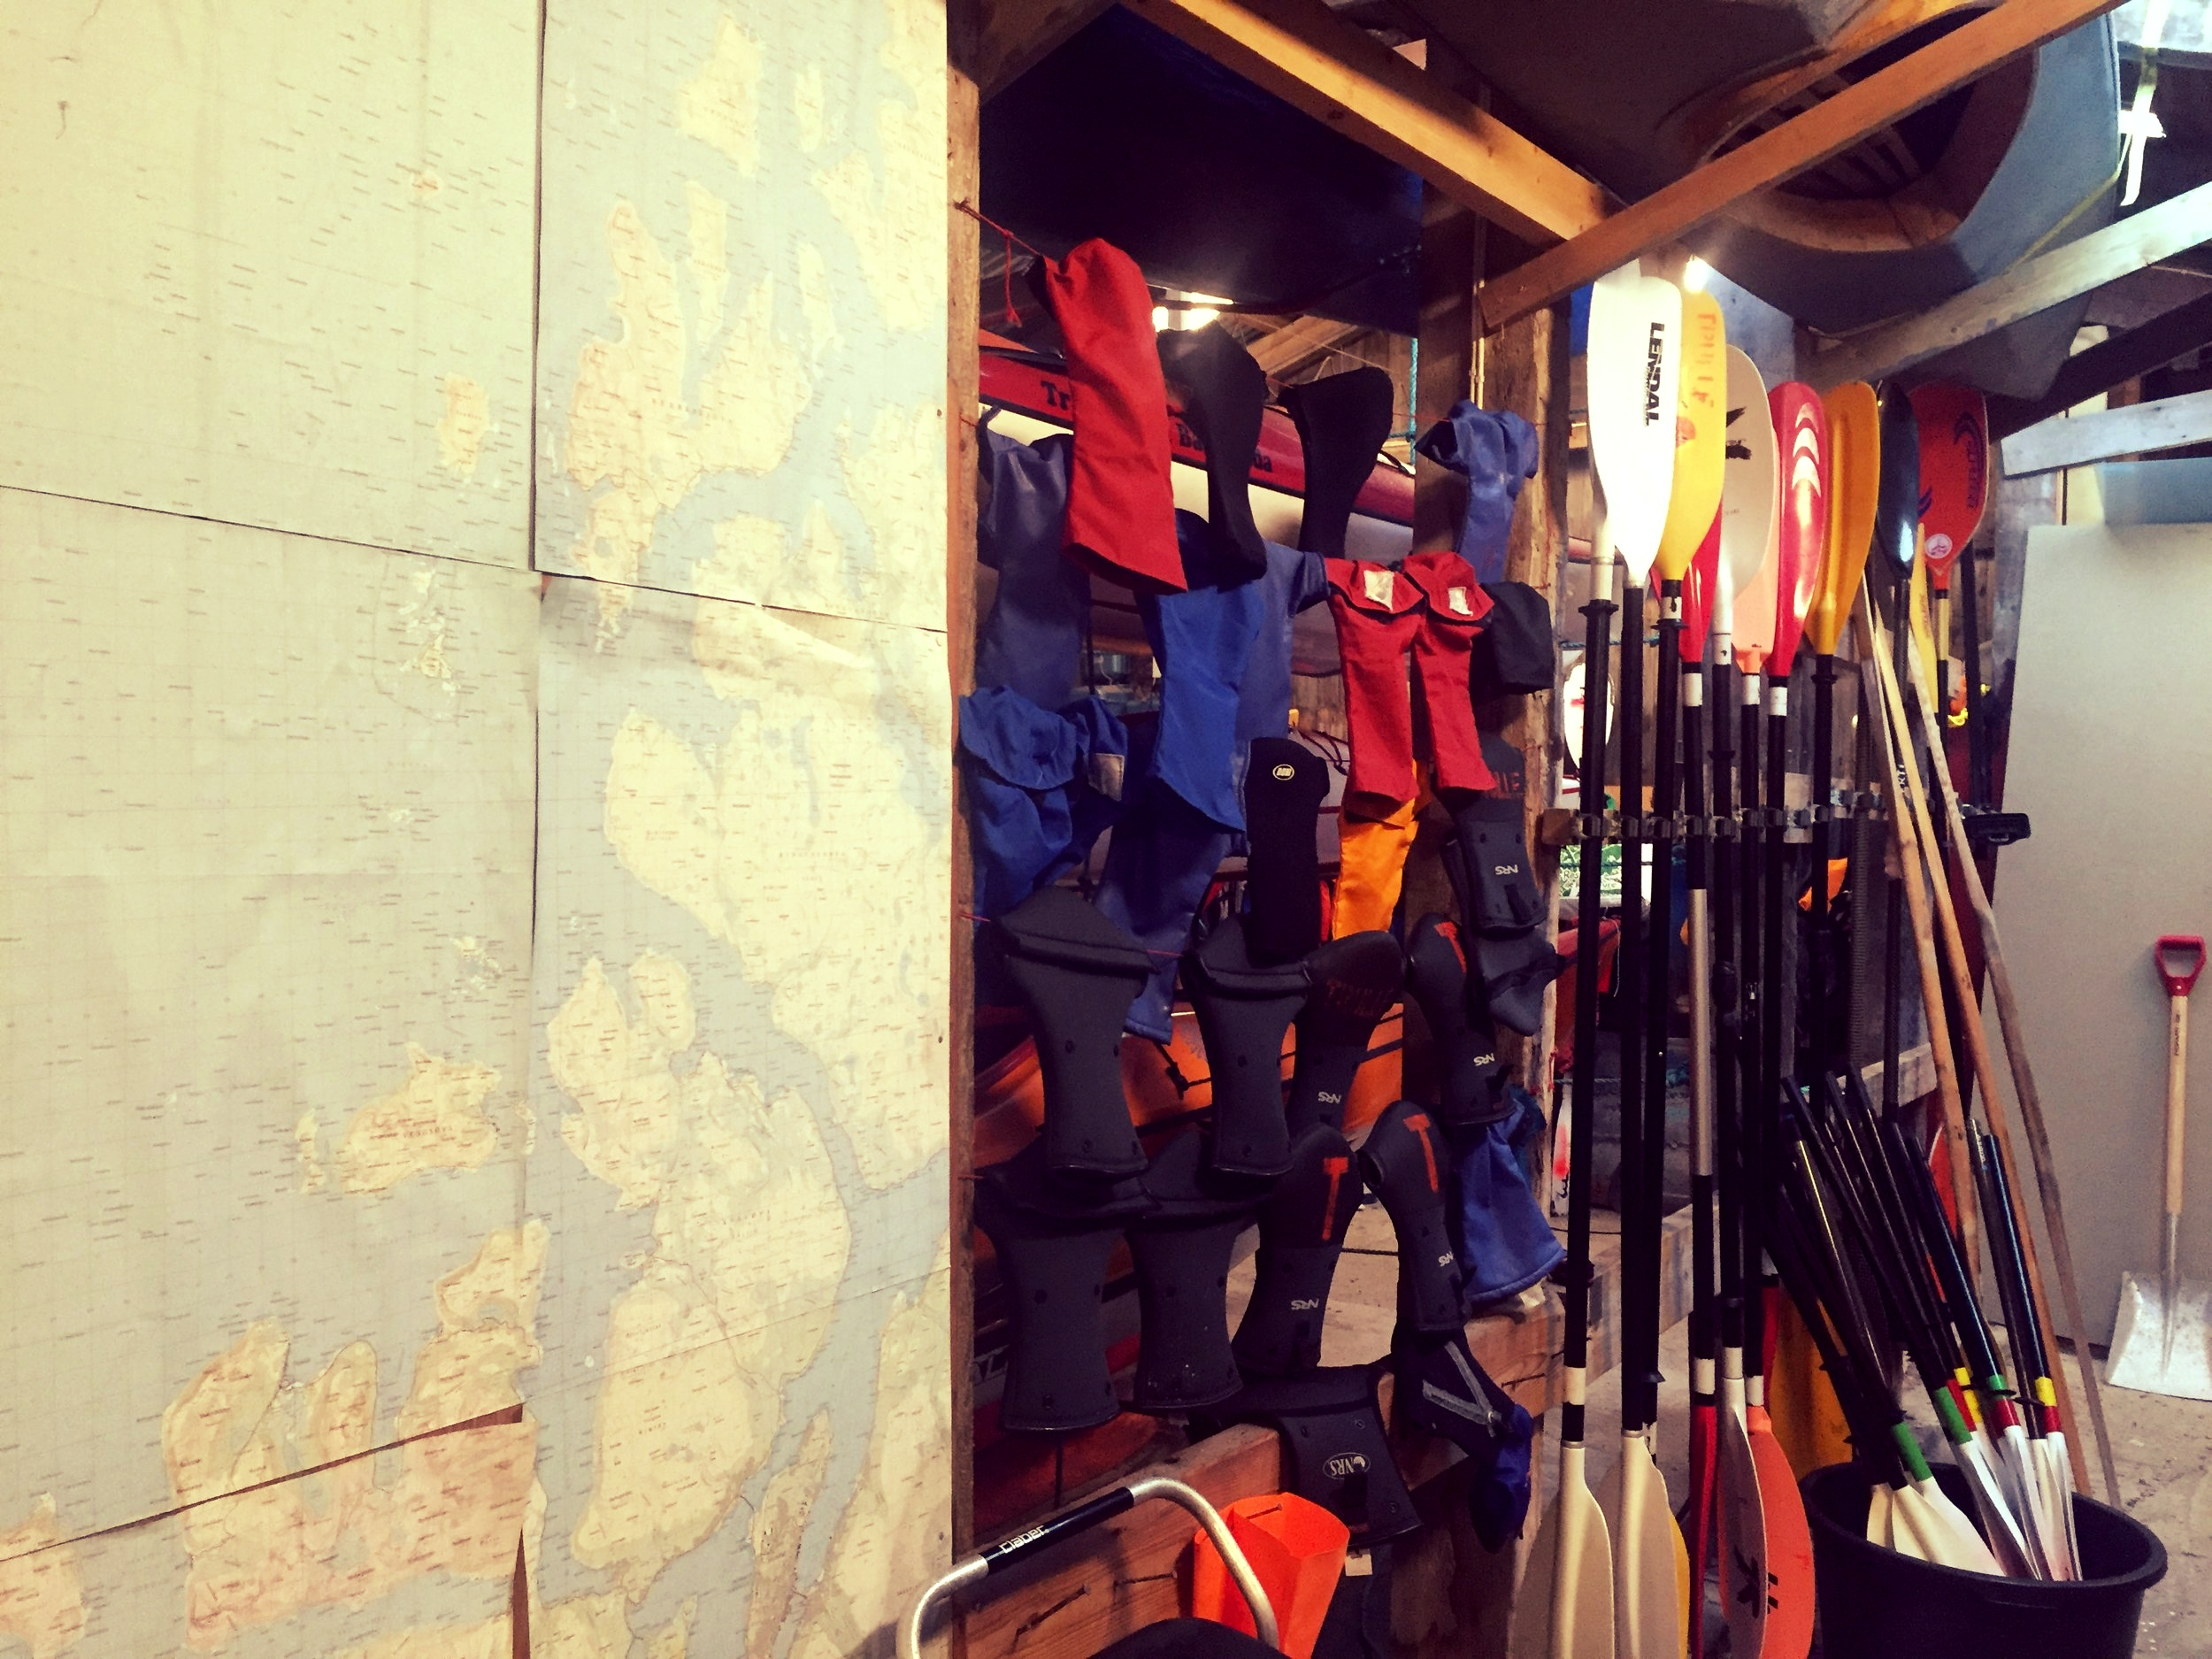 The inside of our boathouse with gear available for members, like pogies (mitts for your hands while padling) and padles, and a giant map of the area to plan your next paddling adventure.